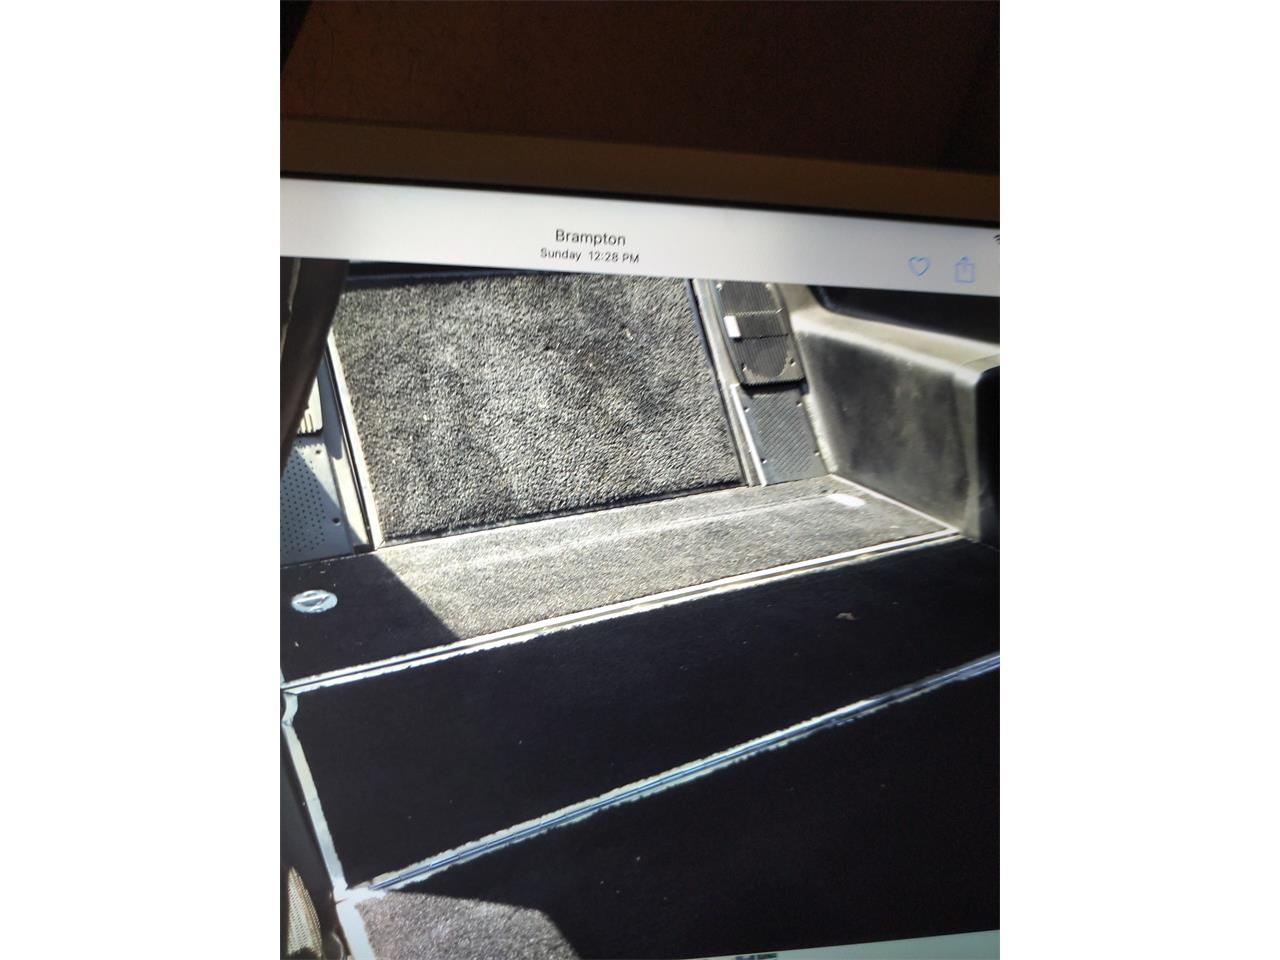 Large Picture of '71 Mustang Boss located in Brampton Ontario - $26,500.00 Offered by a Private Seller - QHGD